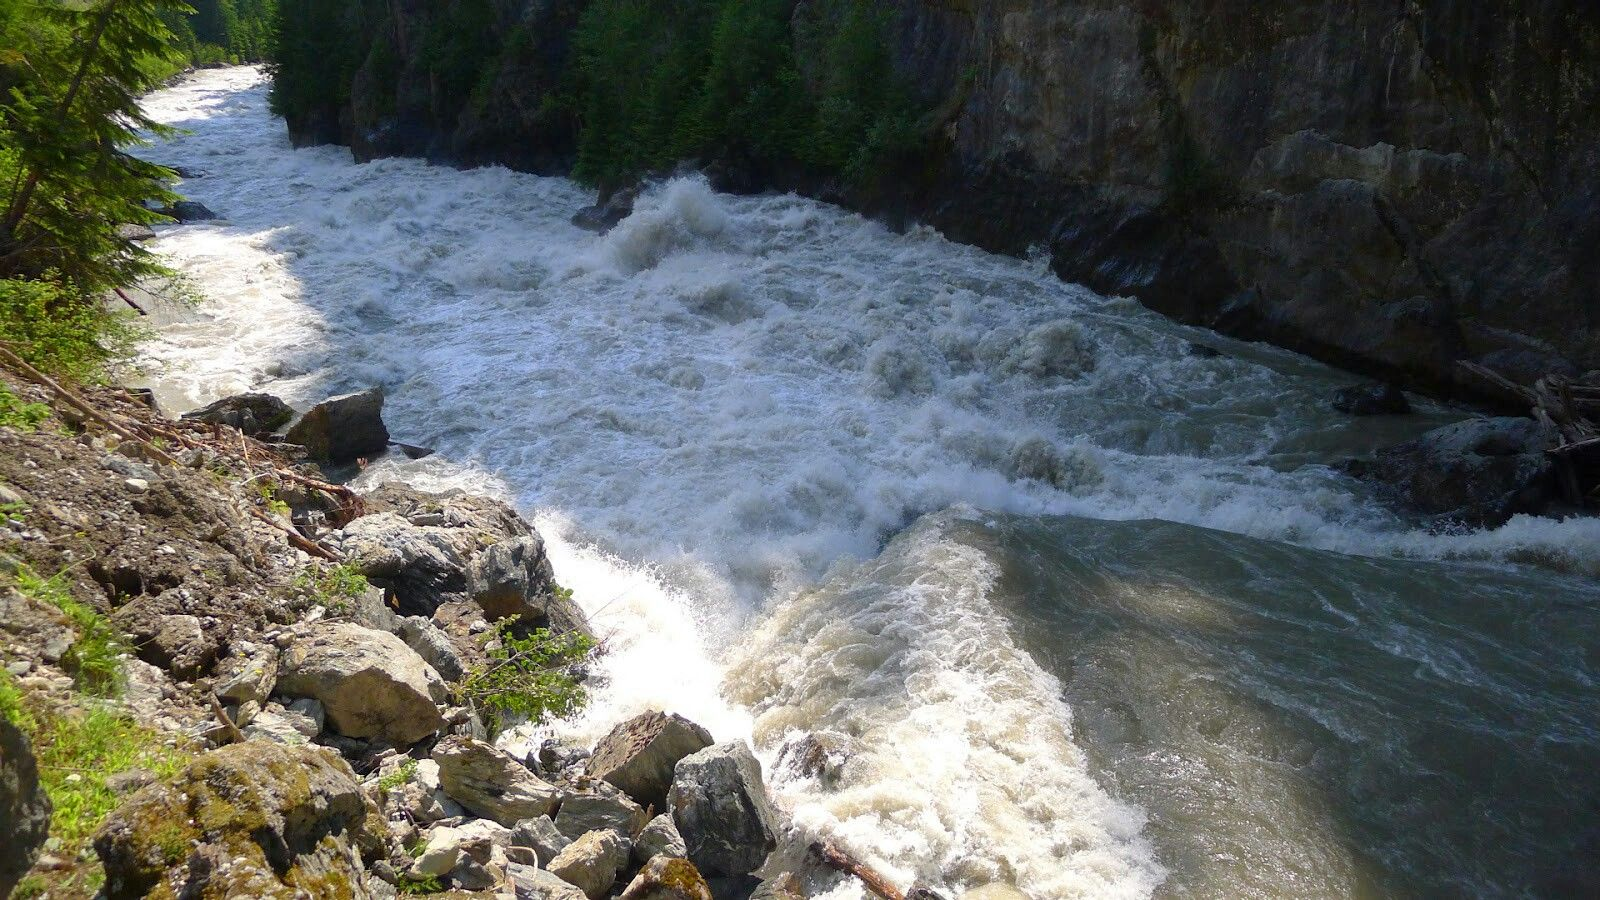 Incomappleux River, BC. Popular for whitewater kayaking and wild beauty